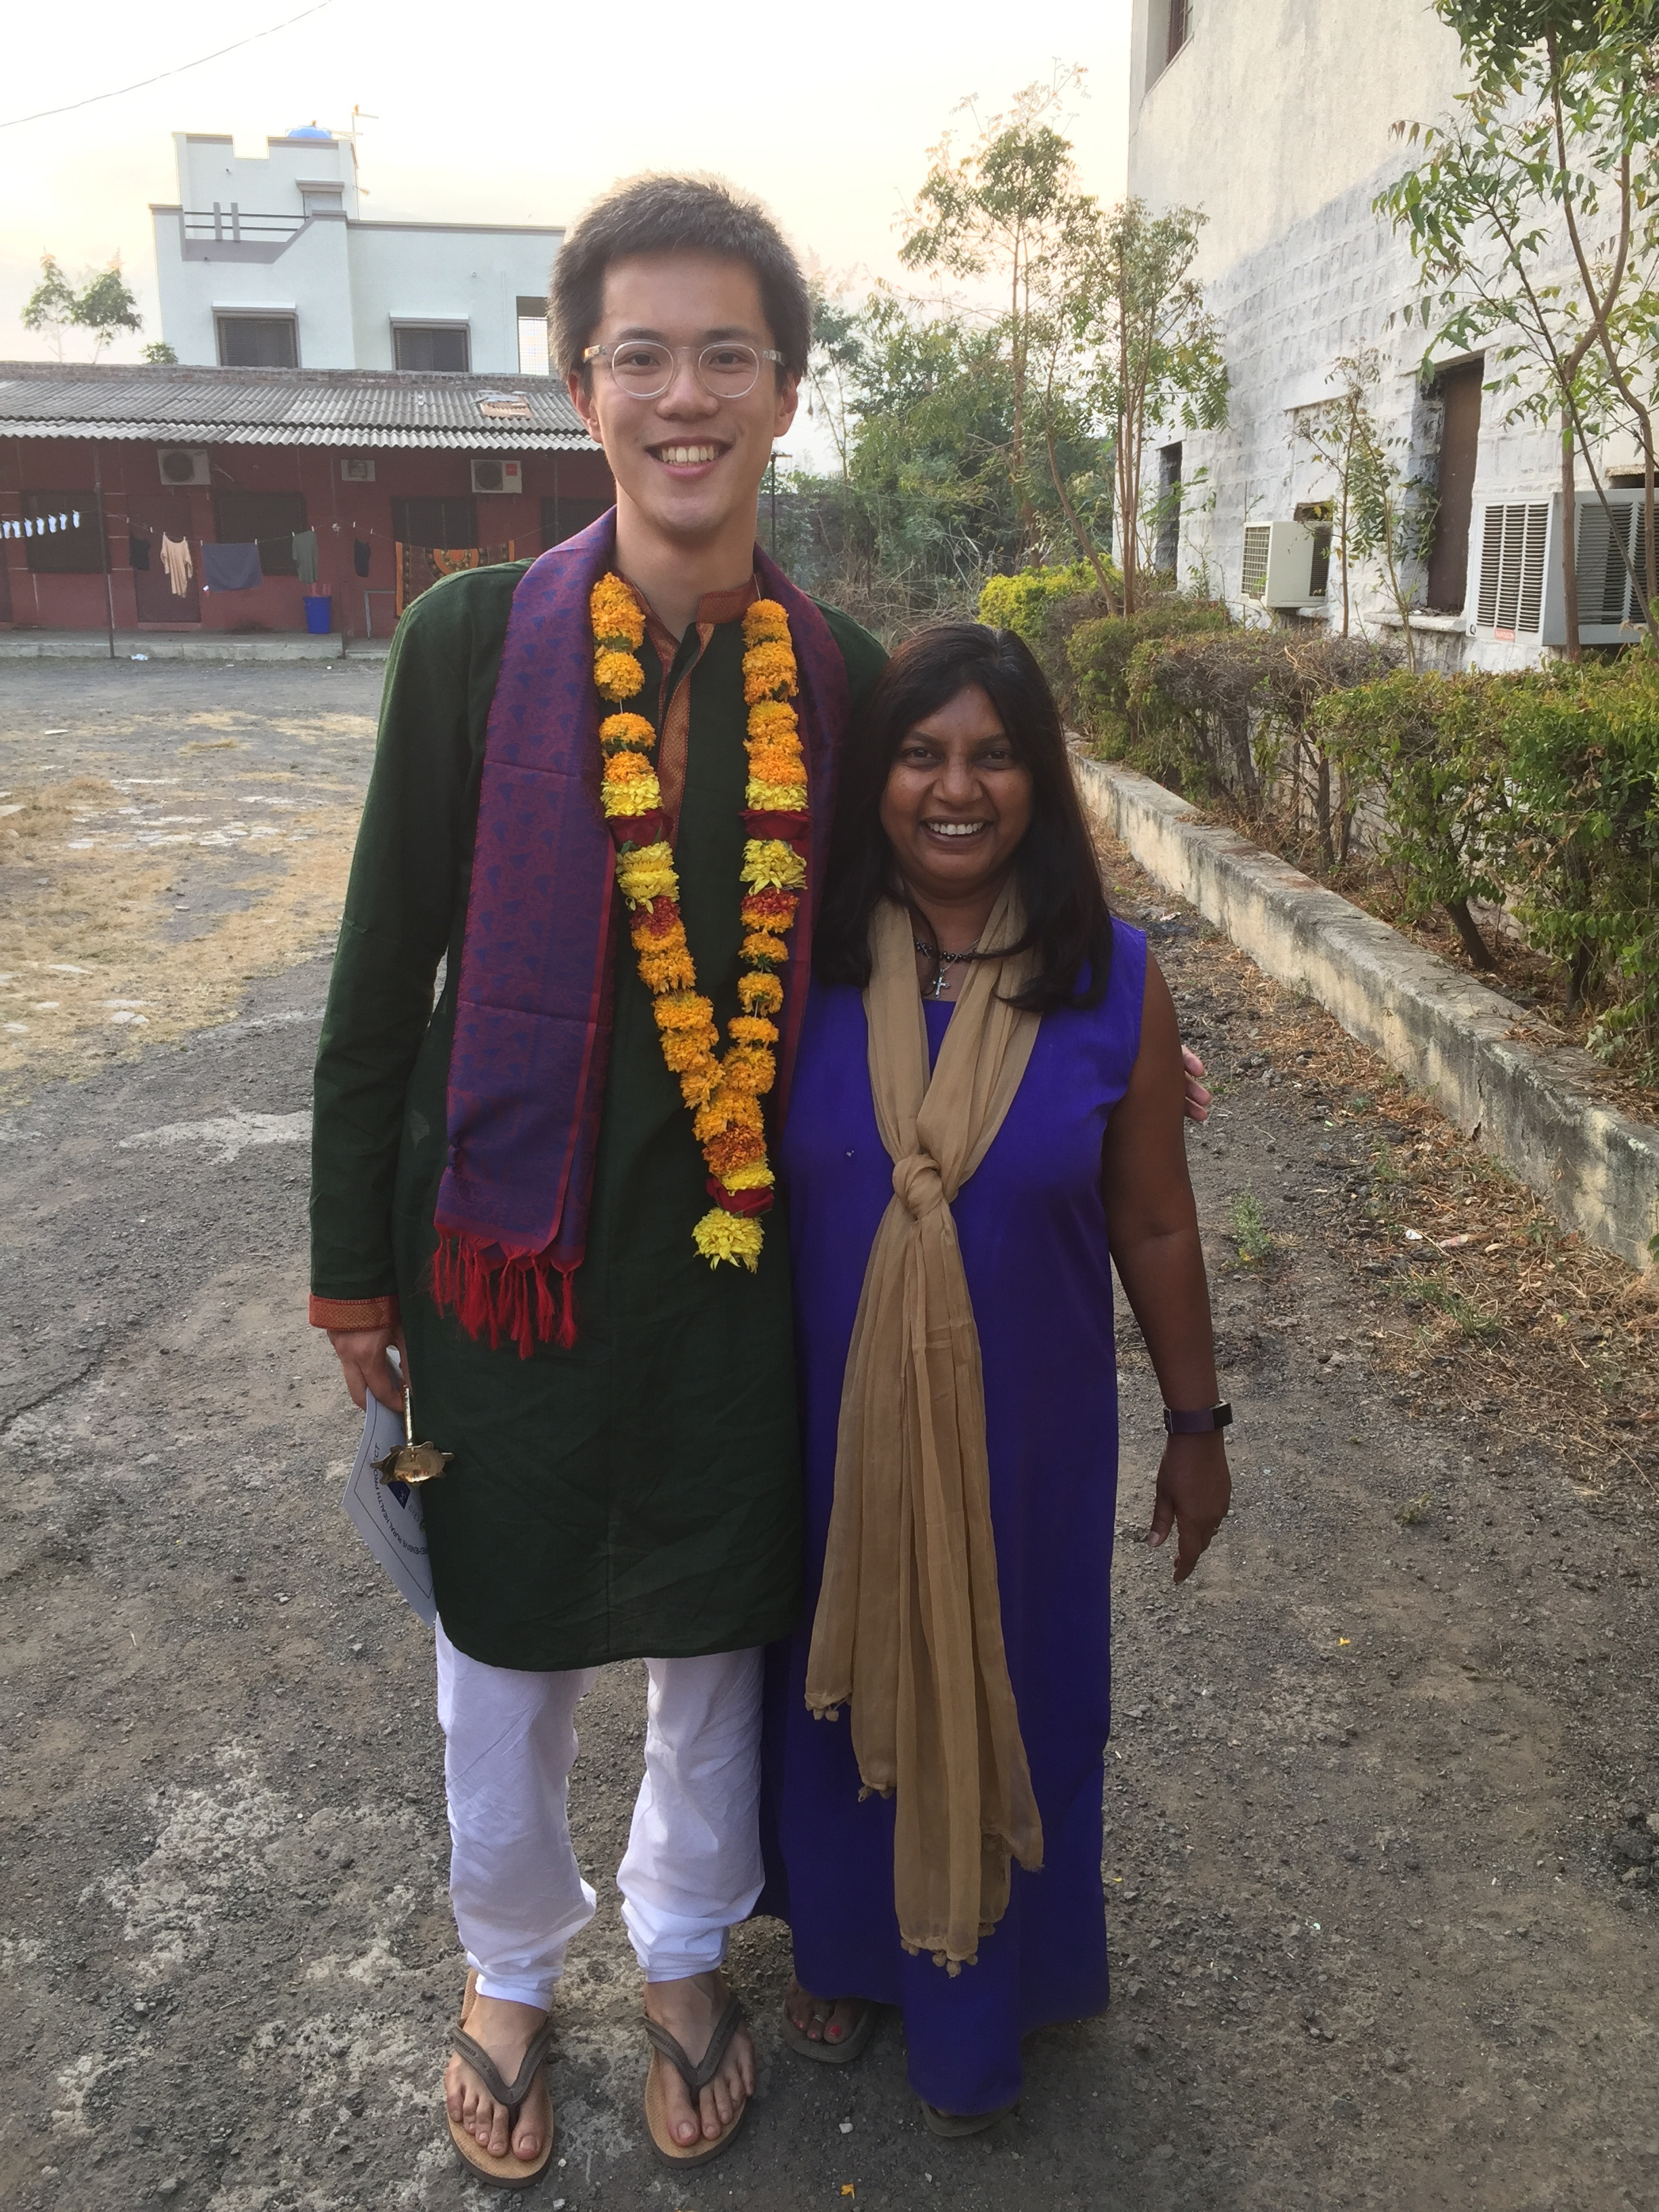 Edwin pictured here with Dr Shobha Arole, Director of the Comprehensive Rural Health Project, Jamkhed, India.